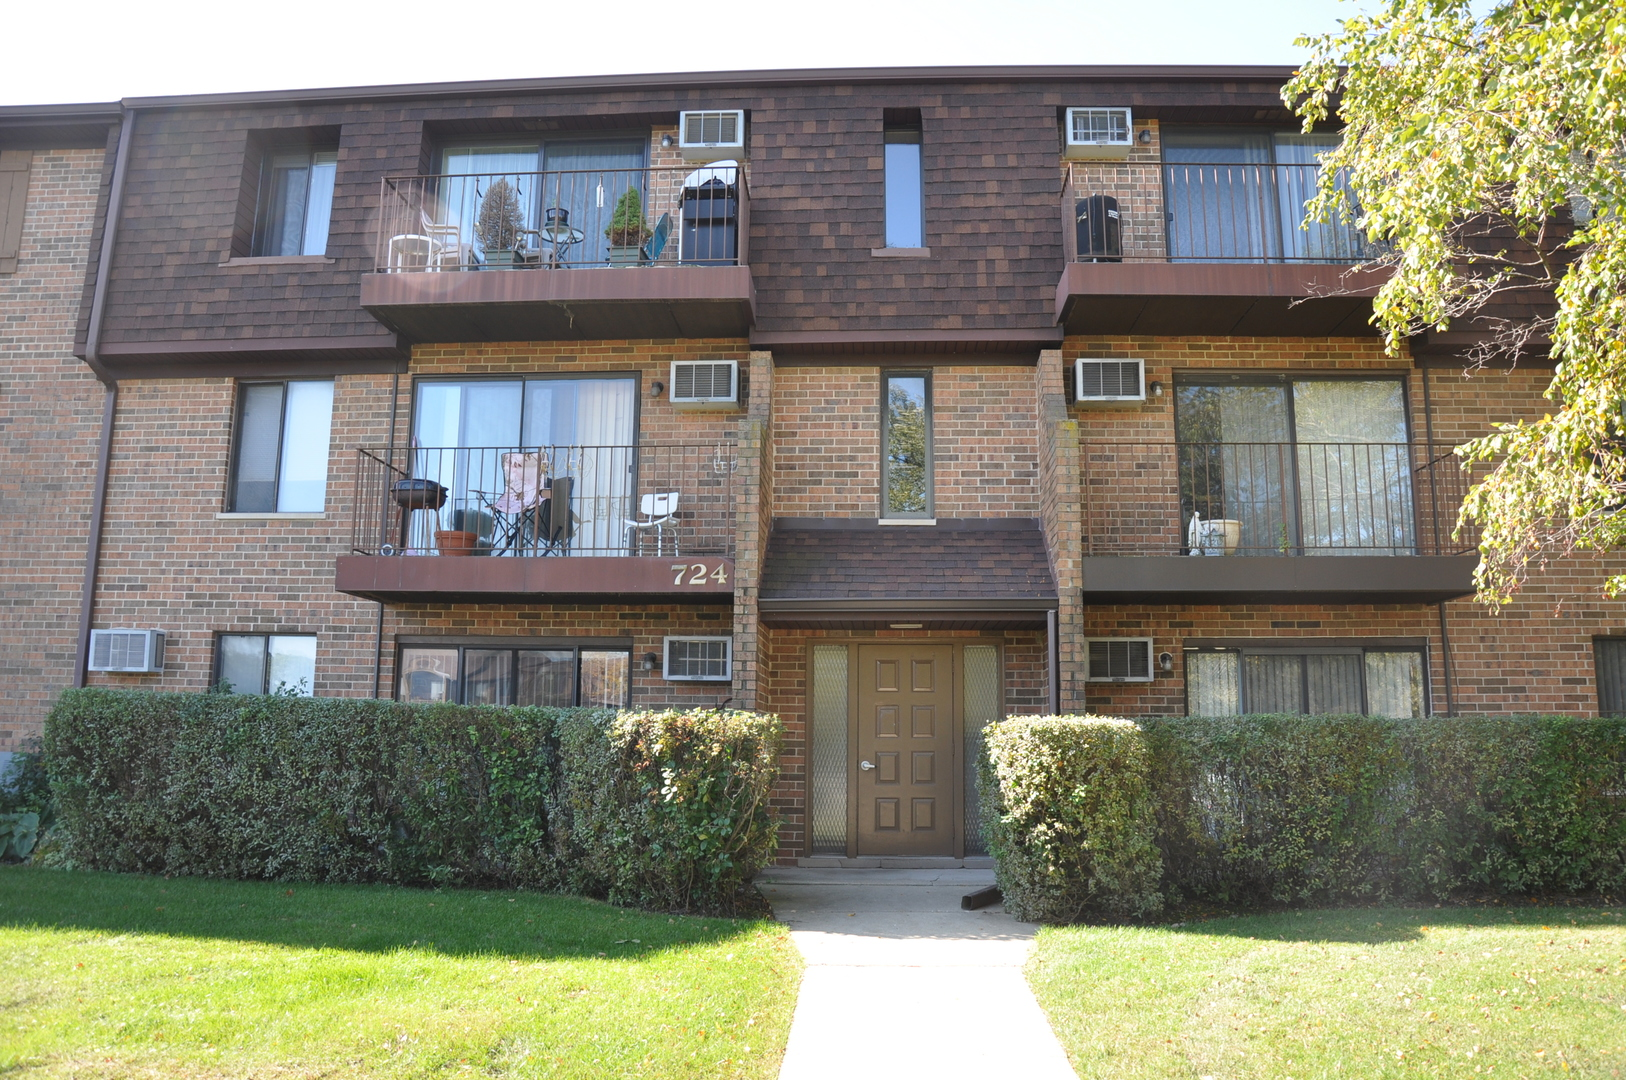 Desirable 2-bedroom condo in the centrally located briar hill subdivision. whole unit freshly painte